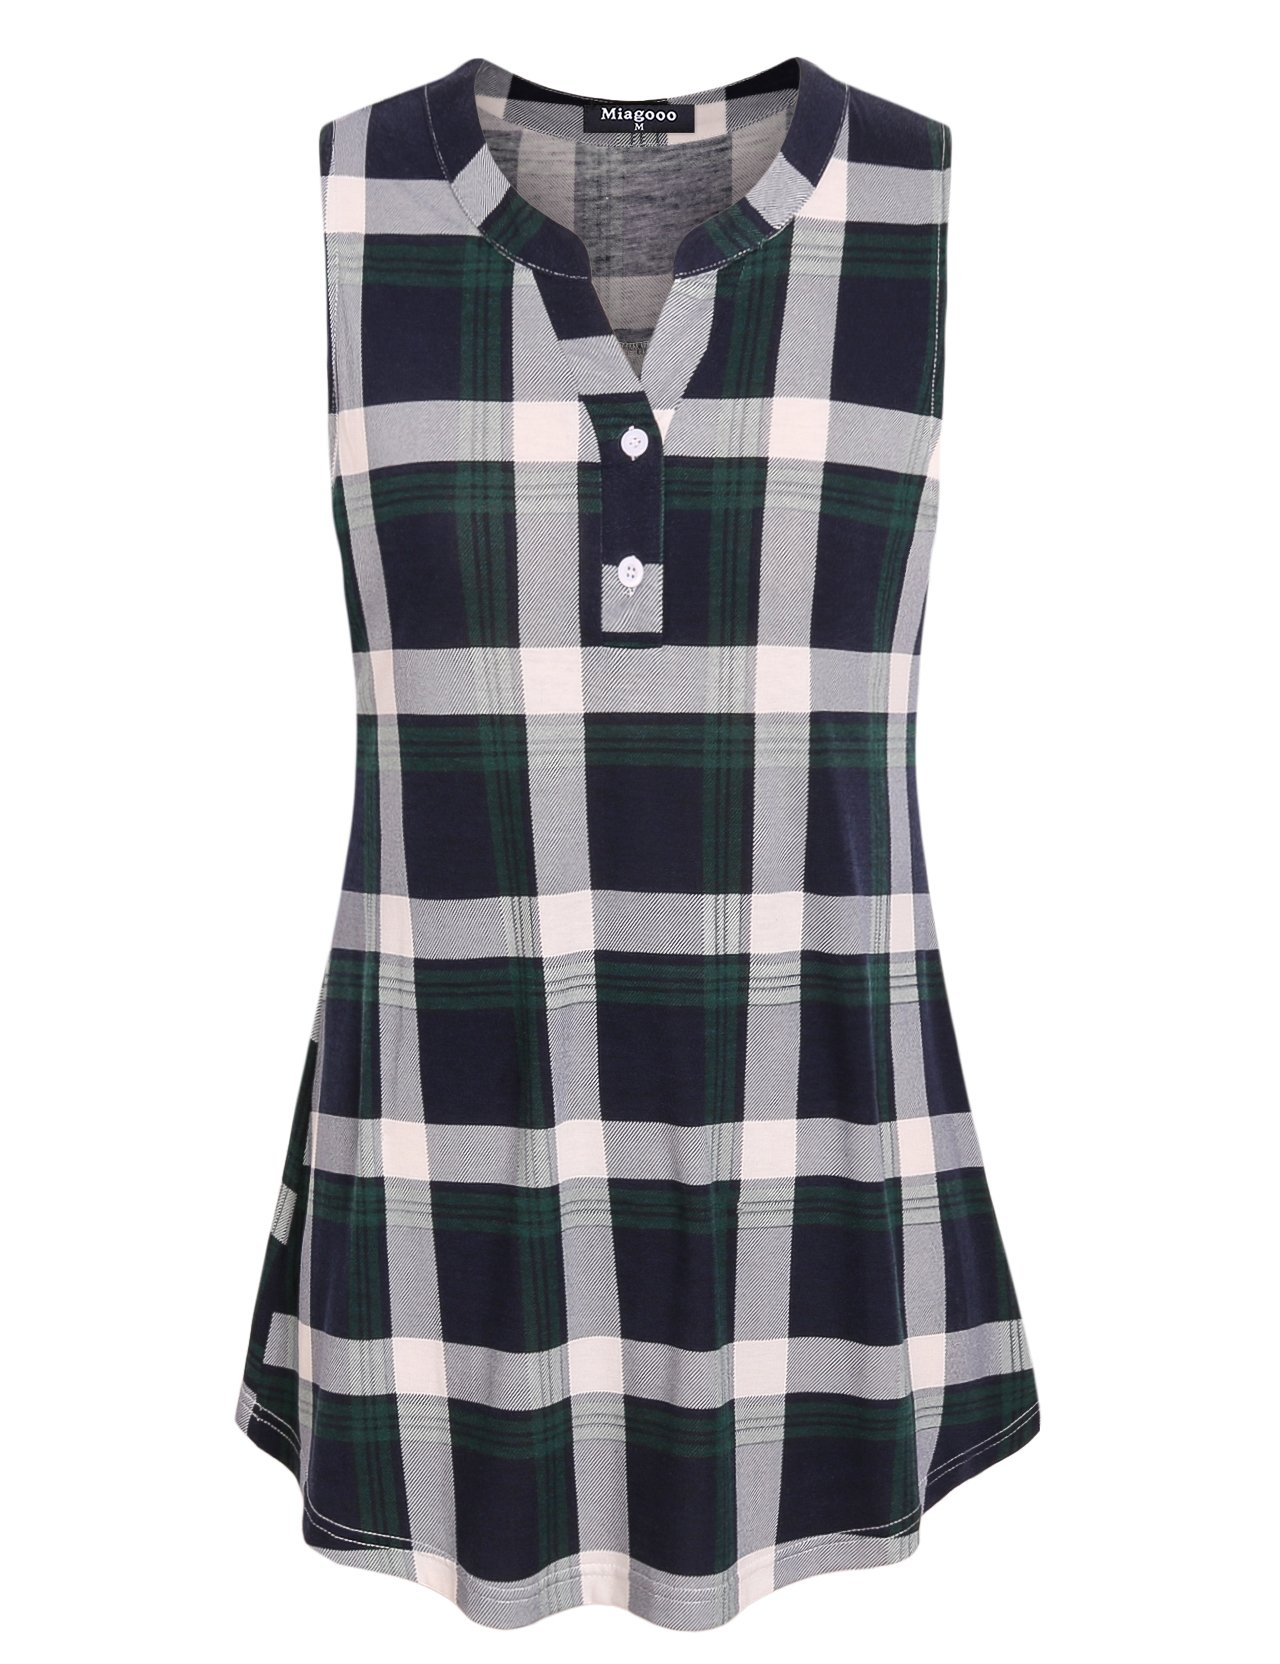 Miagooo Vintage Blouses, Women's Shirts Notched Collar V Neck Sleeveless Tunic Tops Versatile Retro Style Pleated Front Curved Hem Hipster Baggy Plaid Tshirt Green L